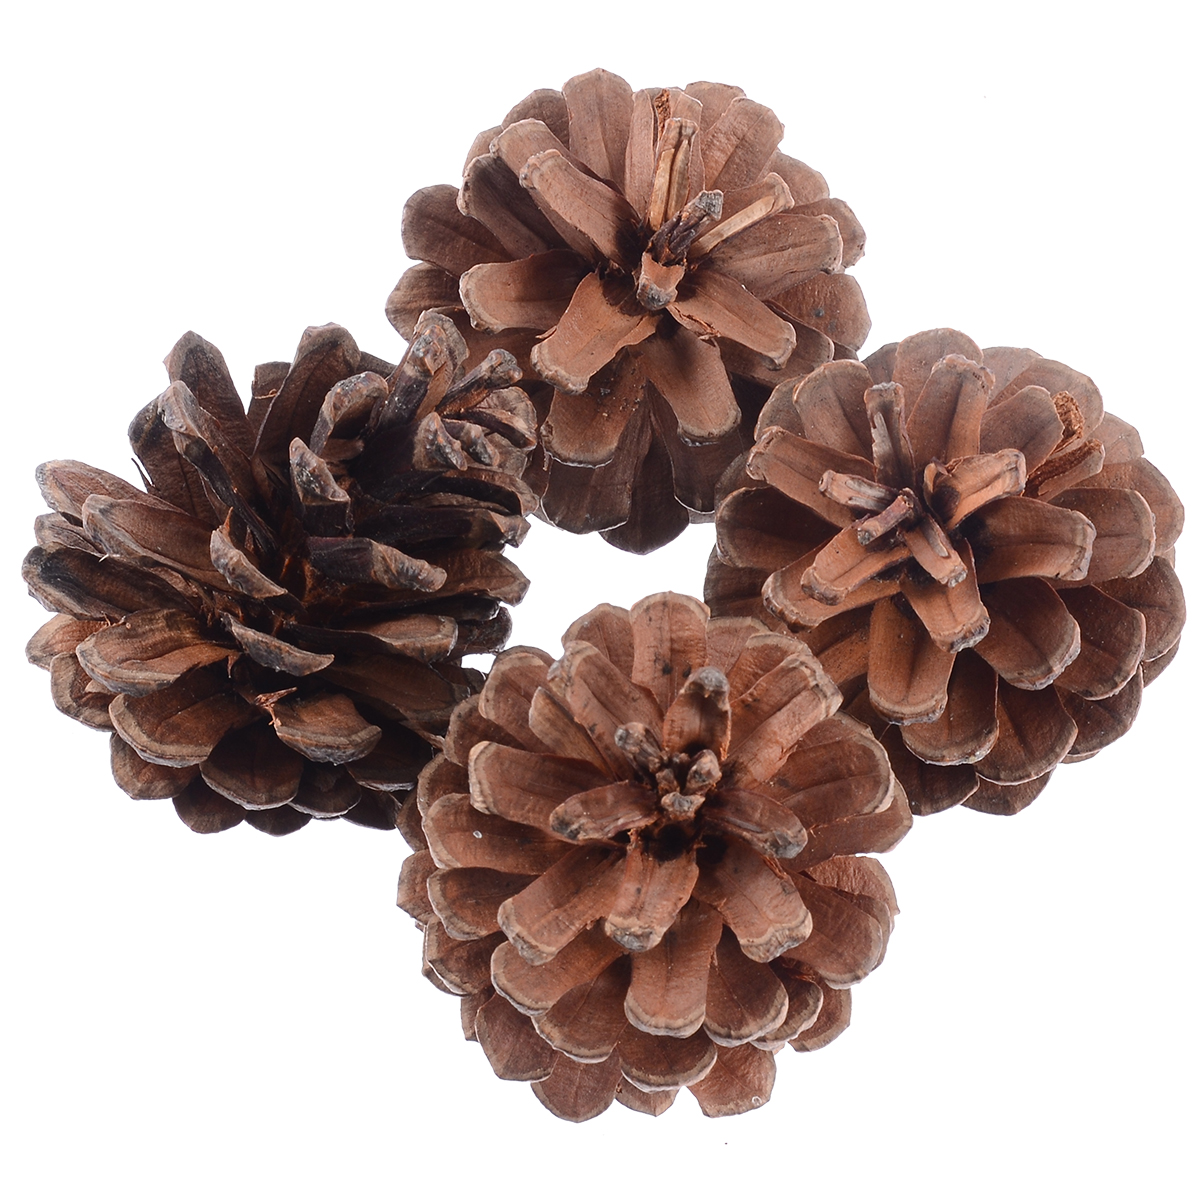 4pcs Pet Funny Chew Teeth Care Play Toy Wood Pine Cone For Rabbit Hamster Guinea Pig Pet Molars Supplies